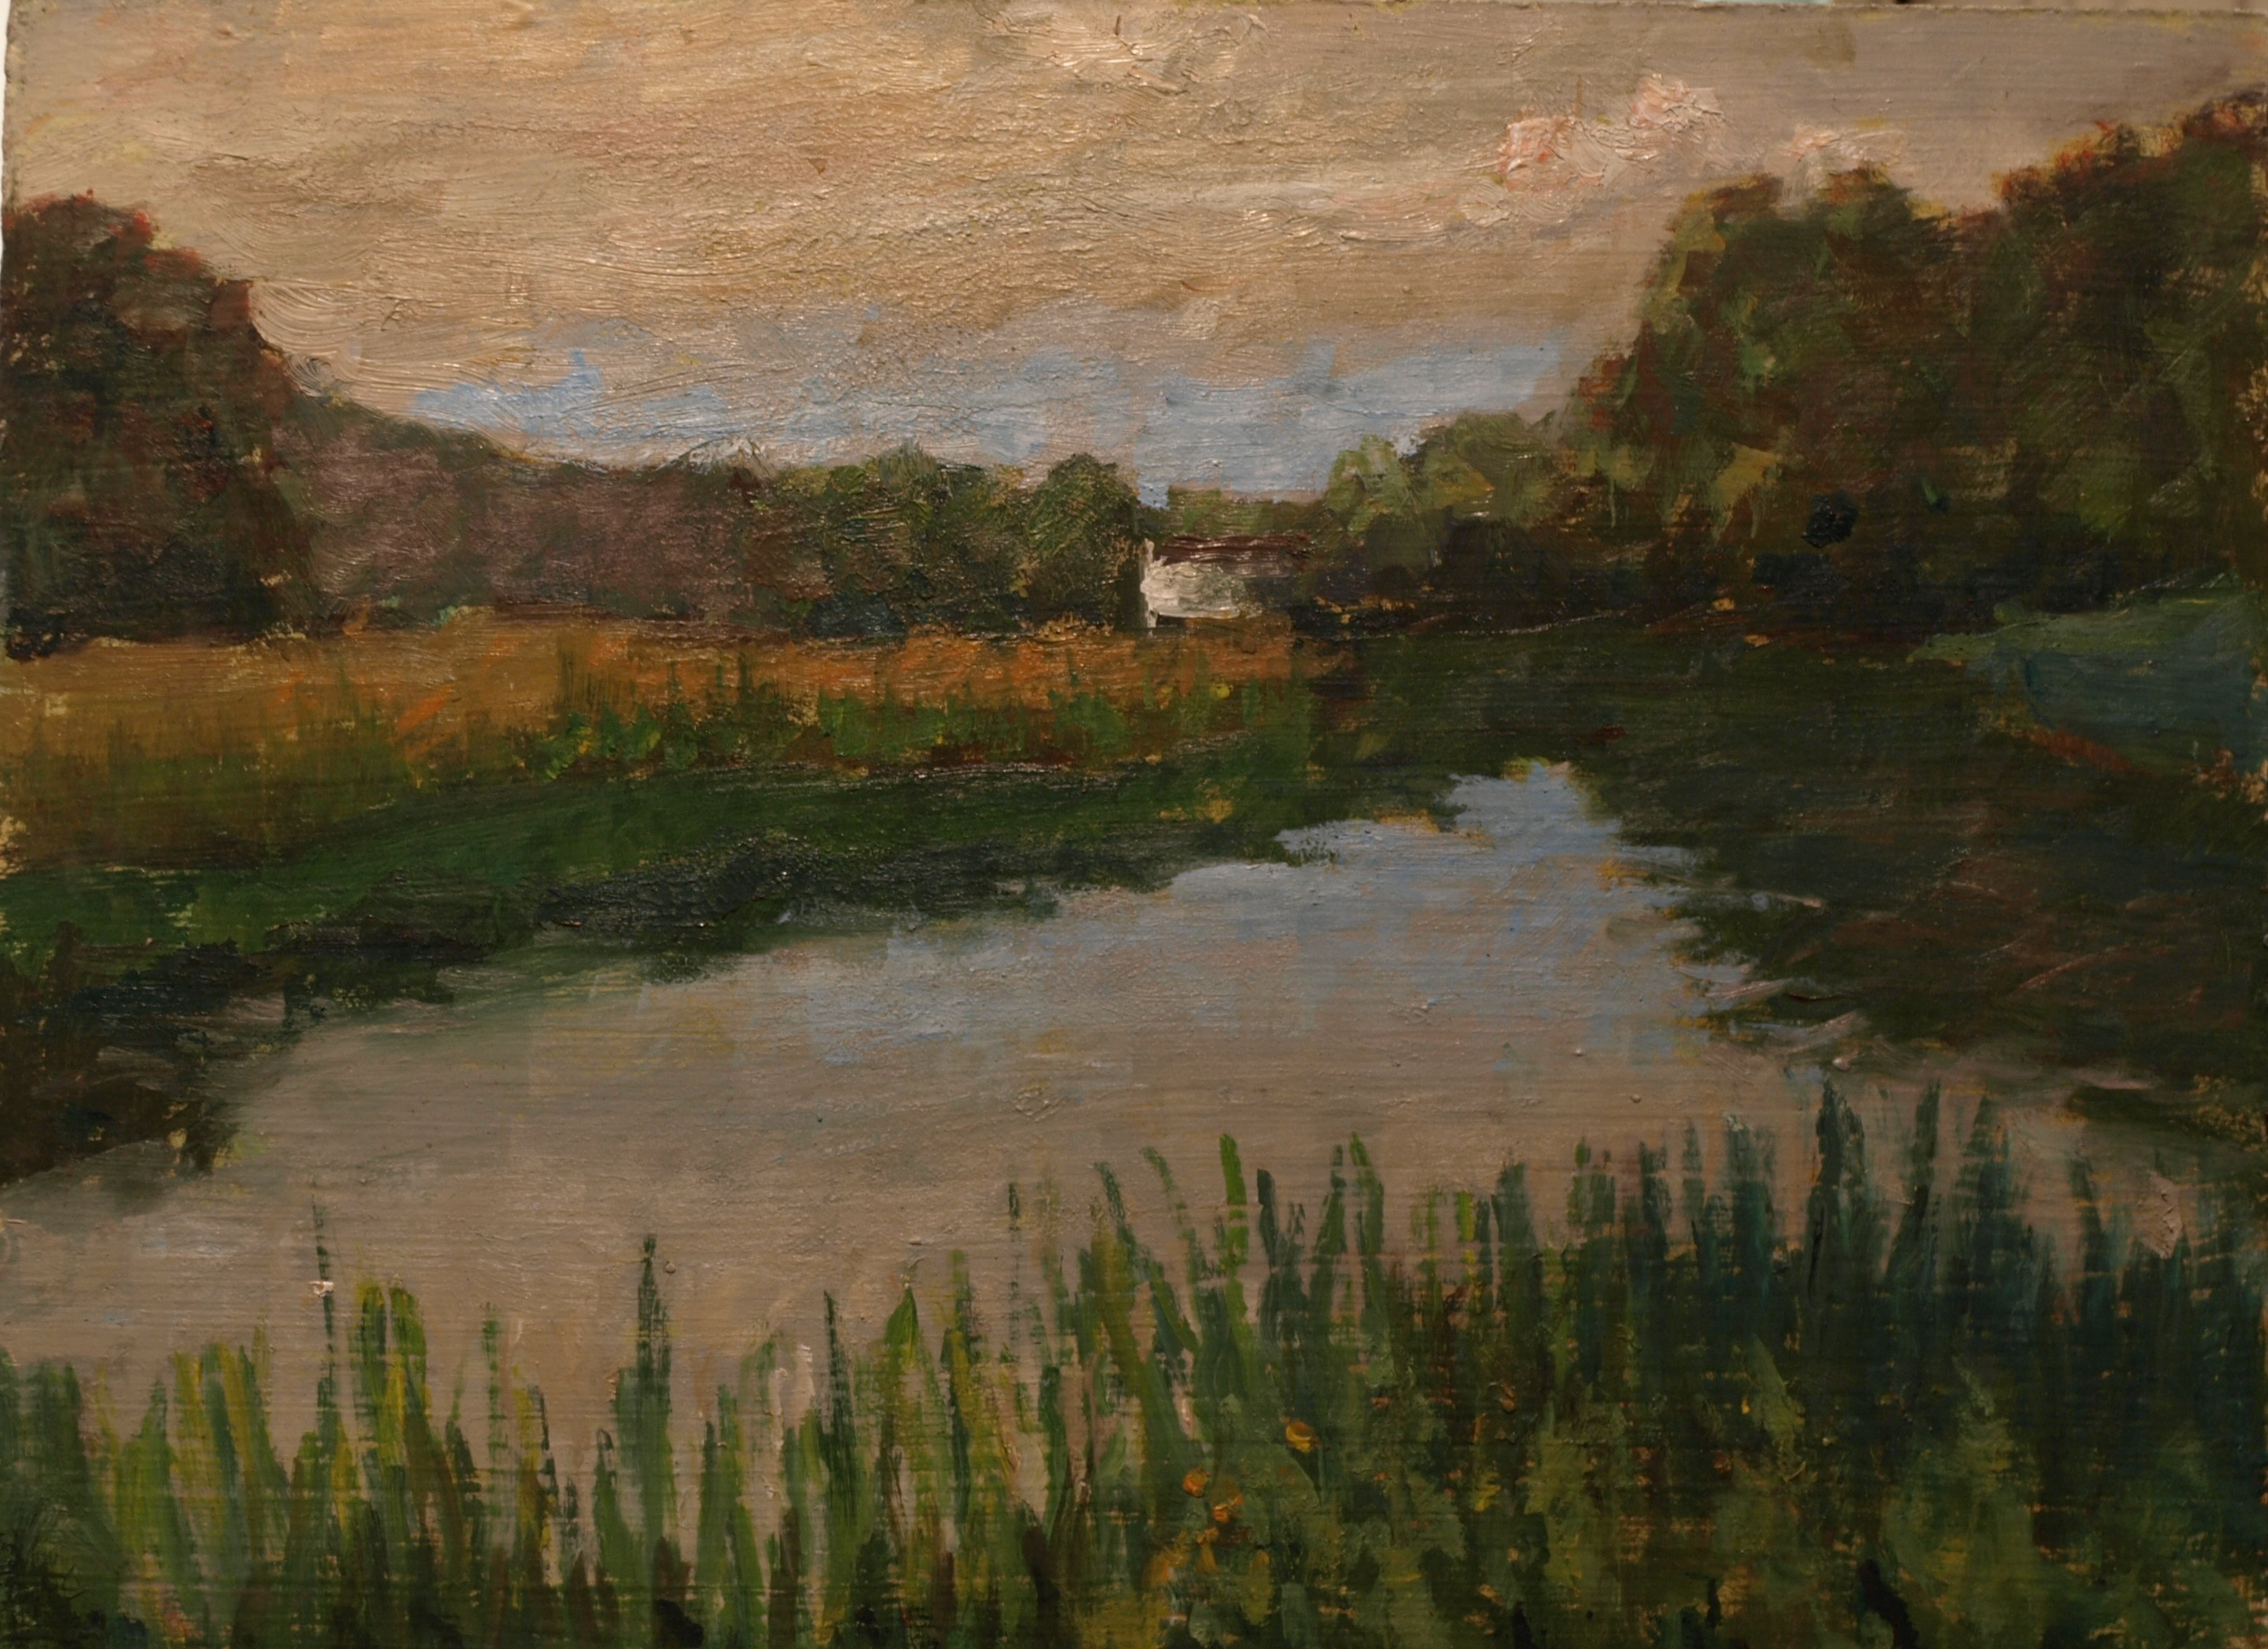 Summer Afternoon by the River, Oil on Canvas on Panel, 9 x 12 Inches, by Richard Stalter, $220